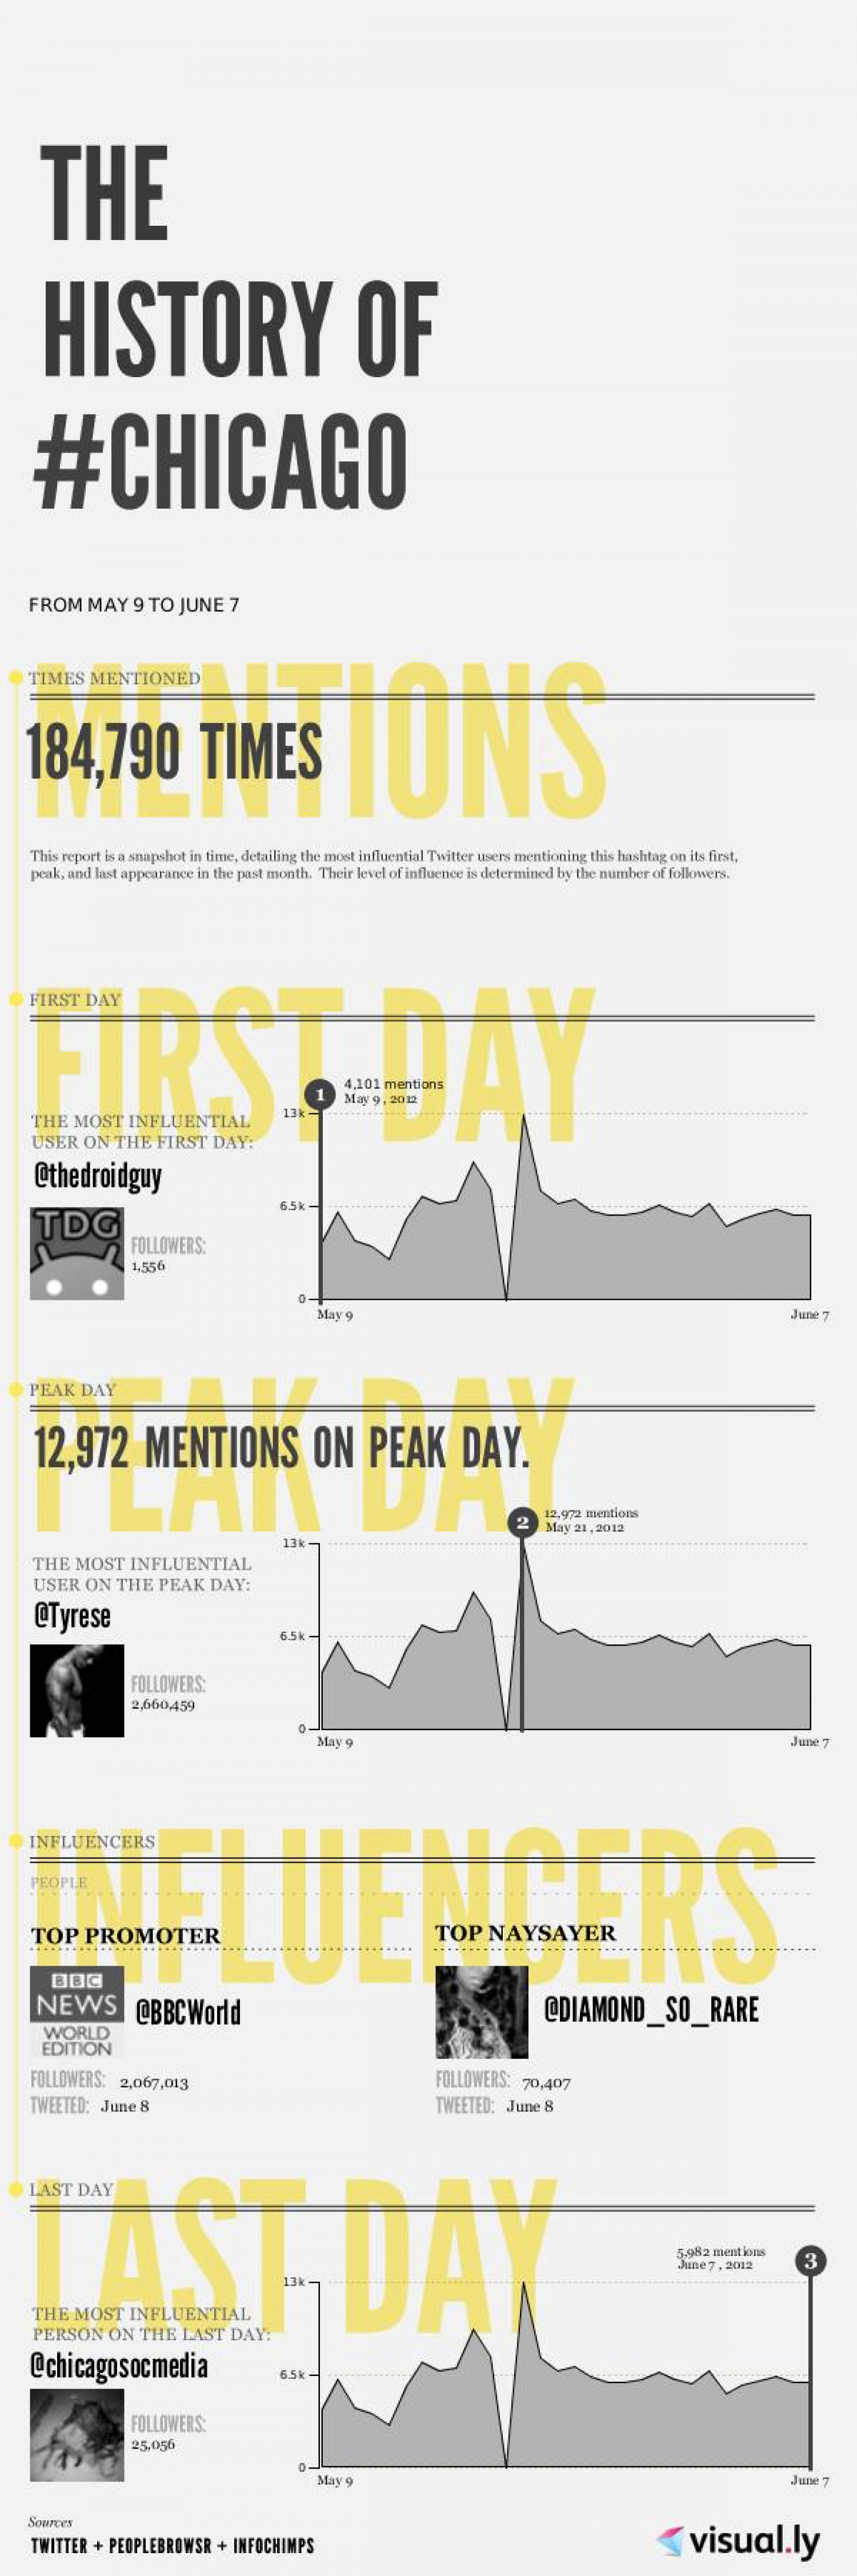 Chicago trend on Twitter Infographic